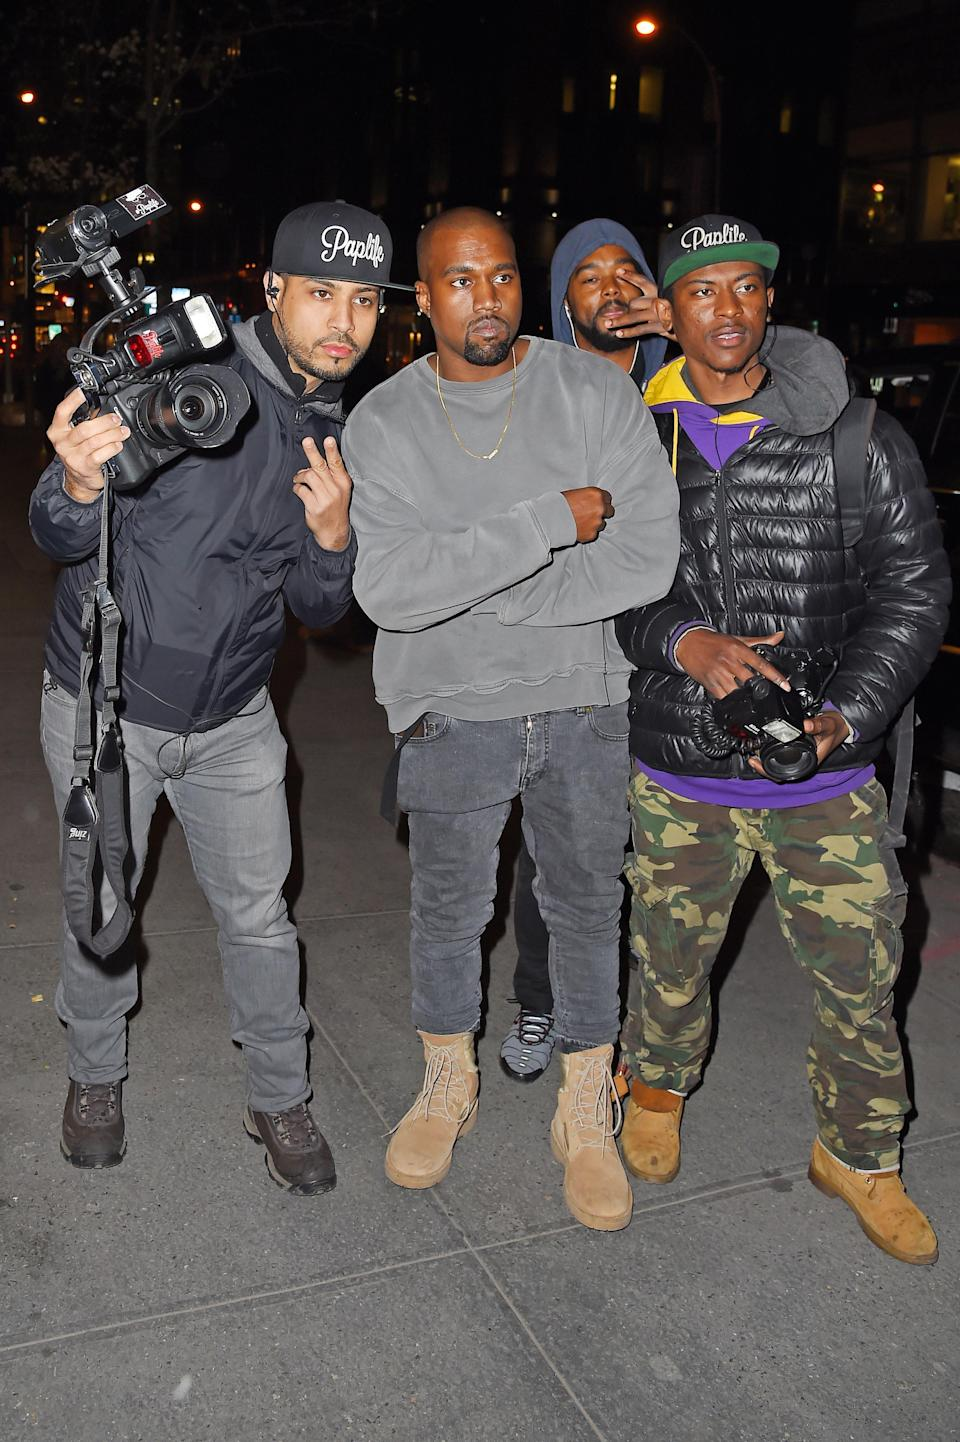 In 2015, Kanye West couldn't find his car in New York City, so these paps were kind enough to help him — and he said thank you with a photo op. (Photo: Getty Images)